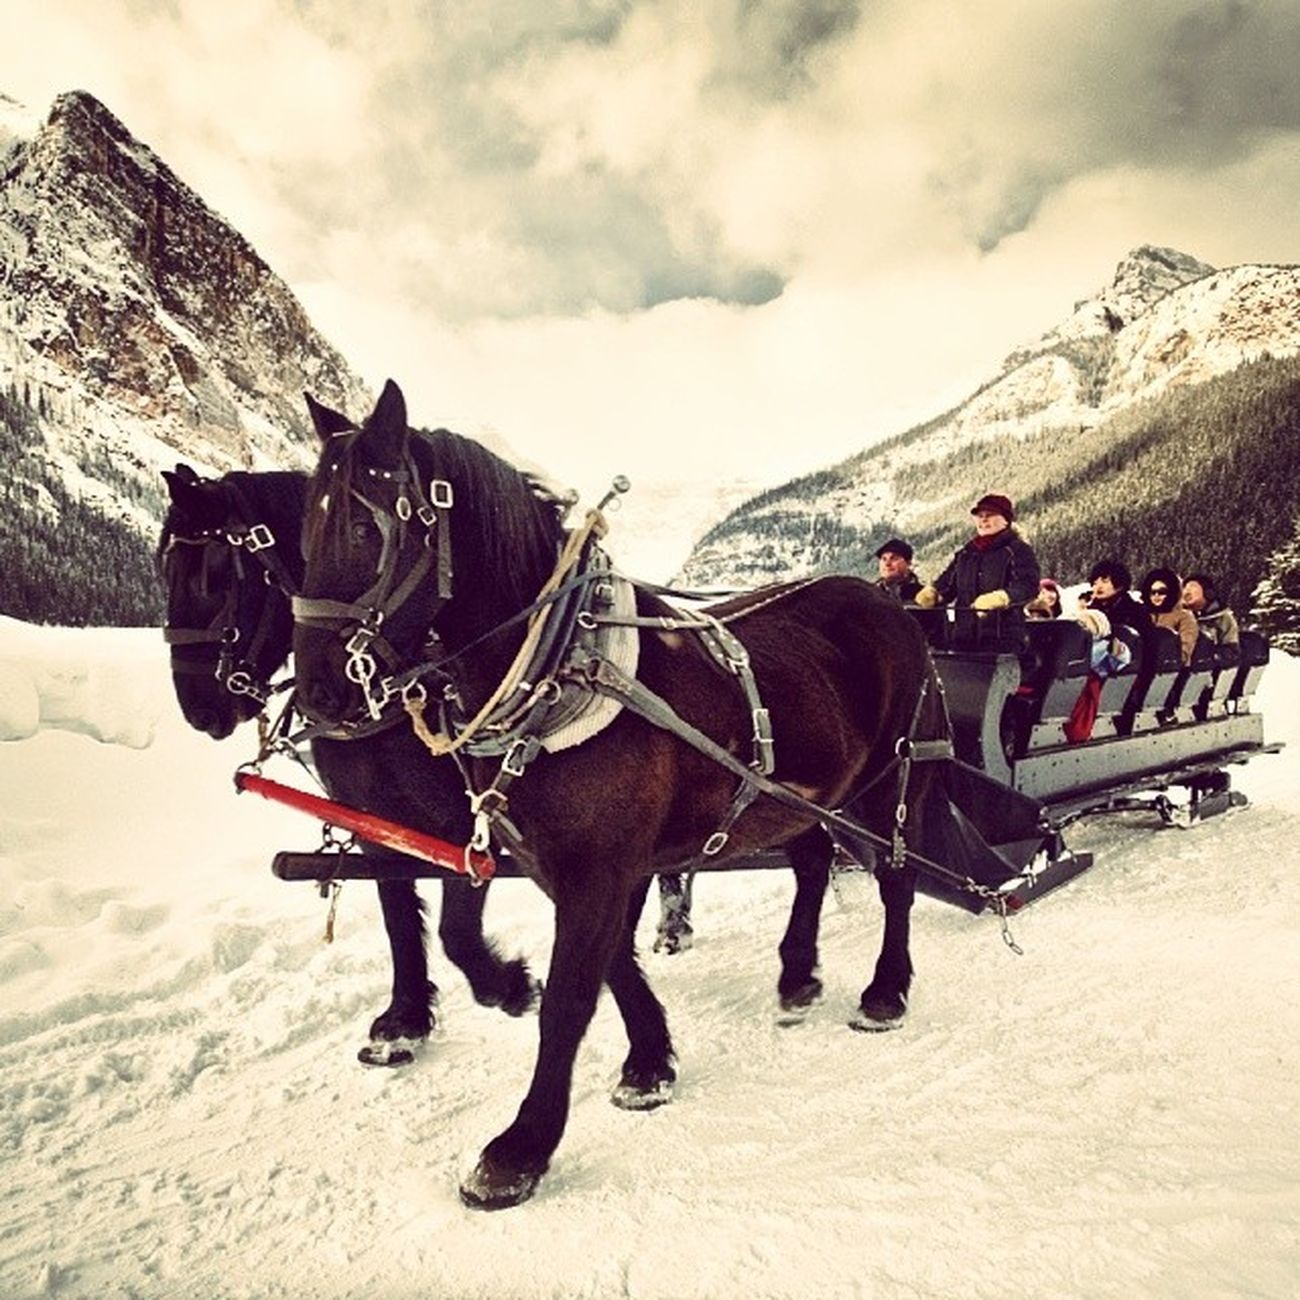 Amongst the many guilty pleasures of Banff, a sleigh ride remains the most exotic.